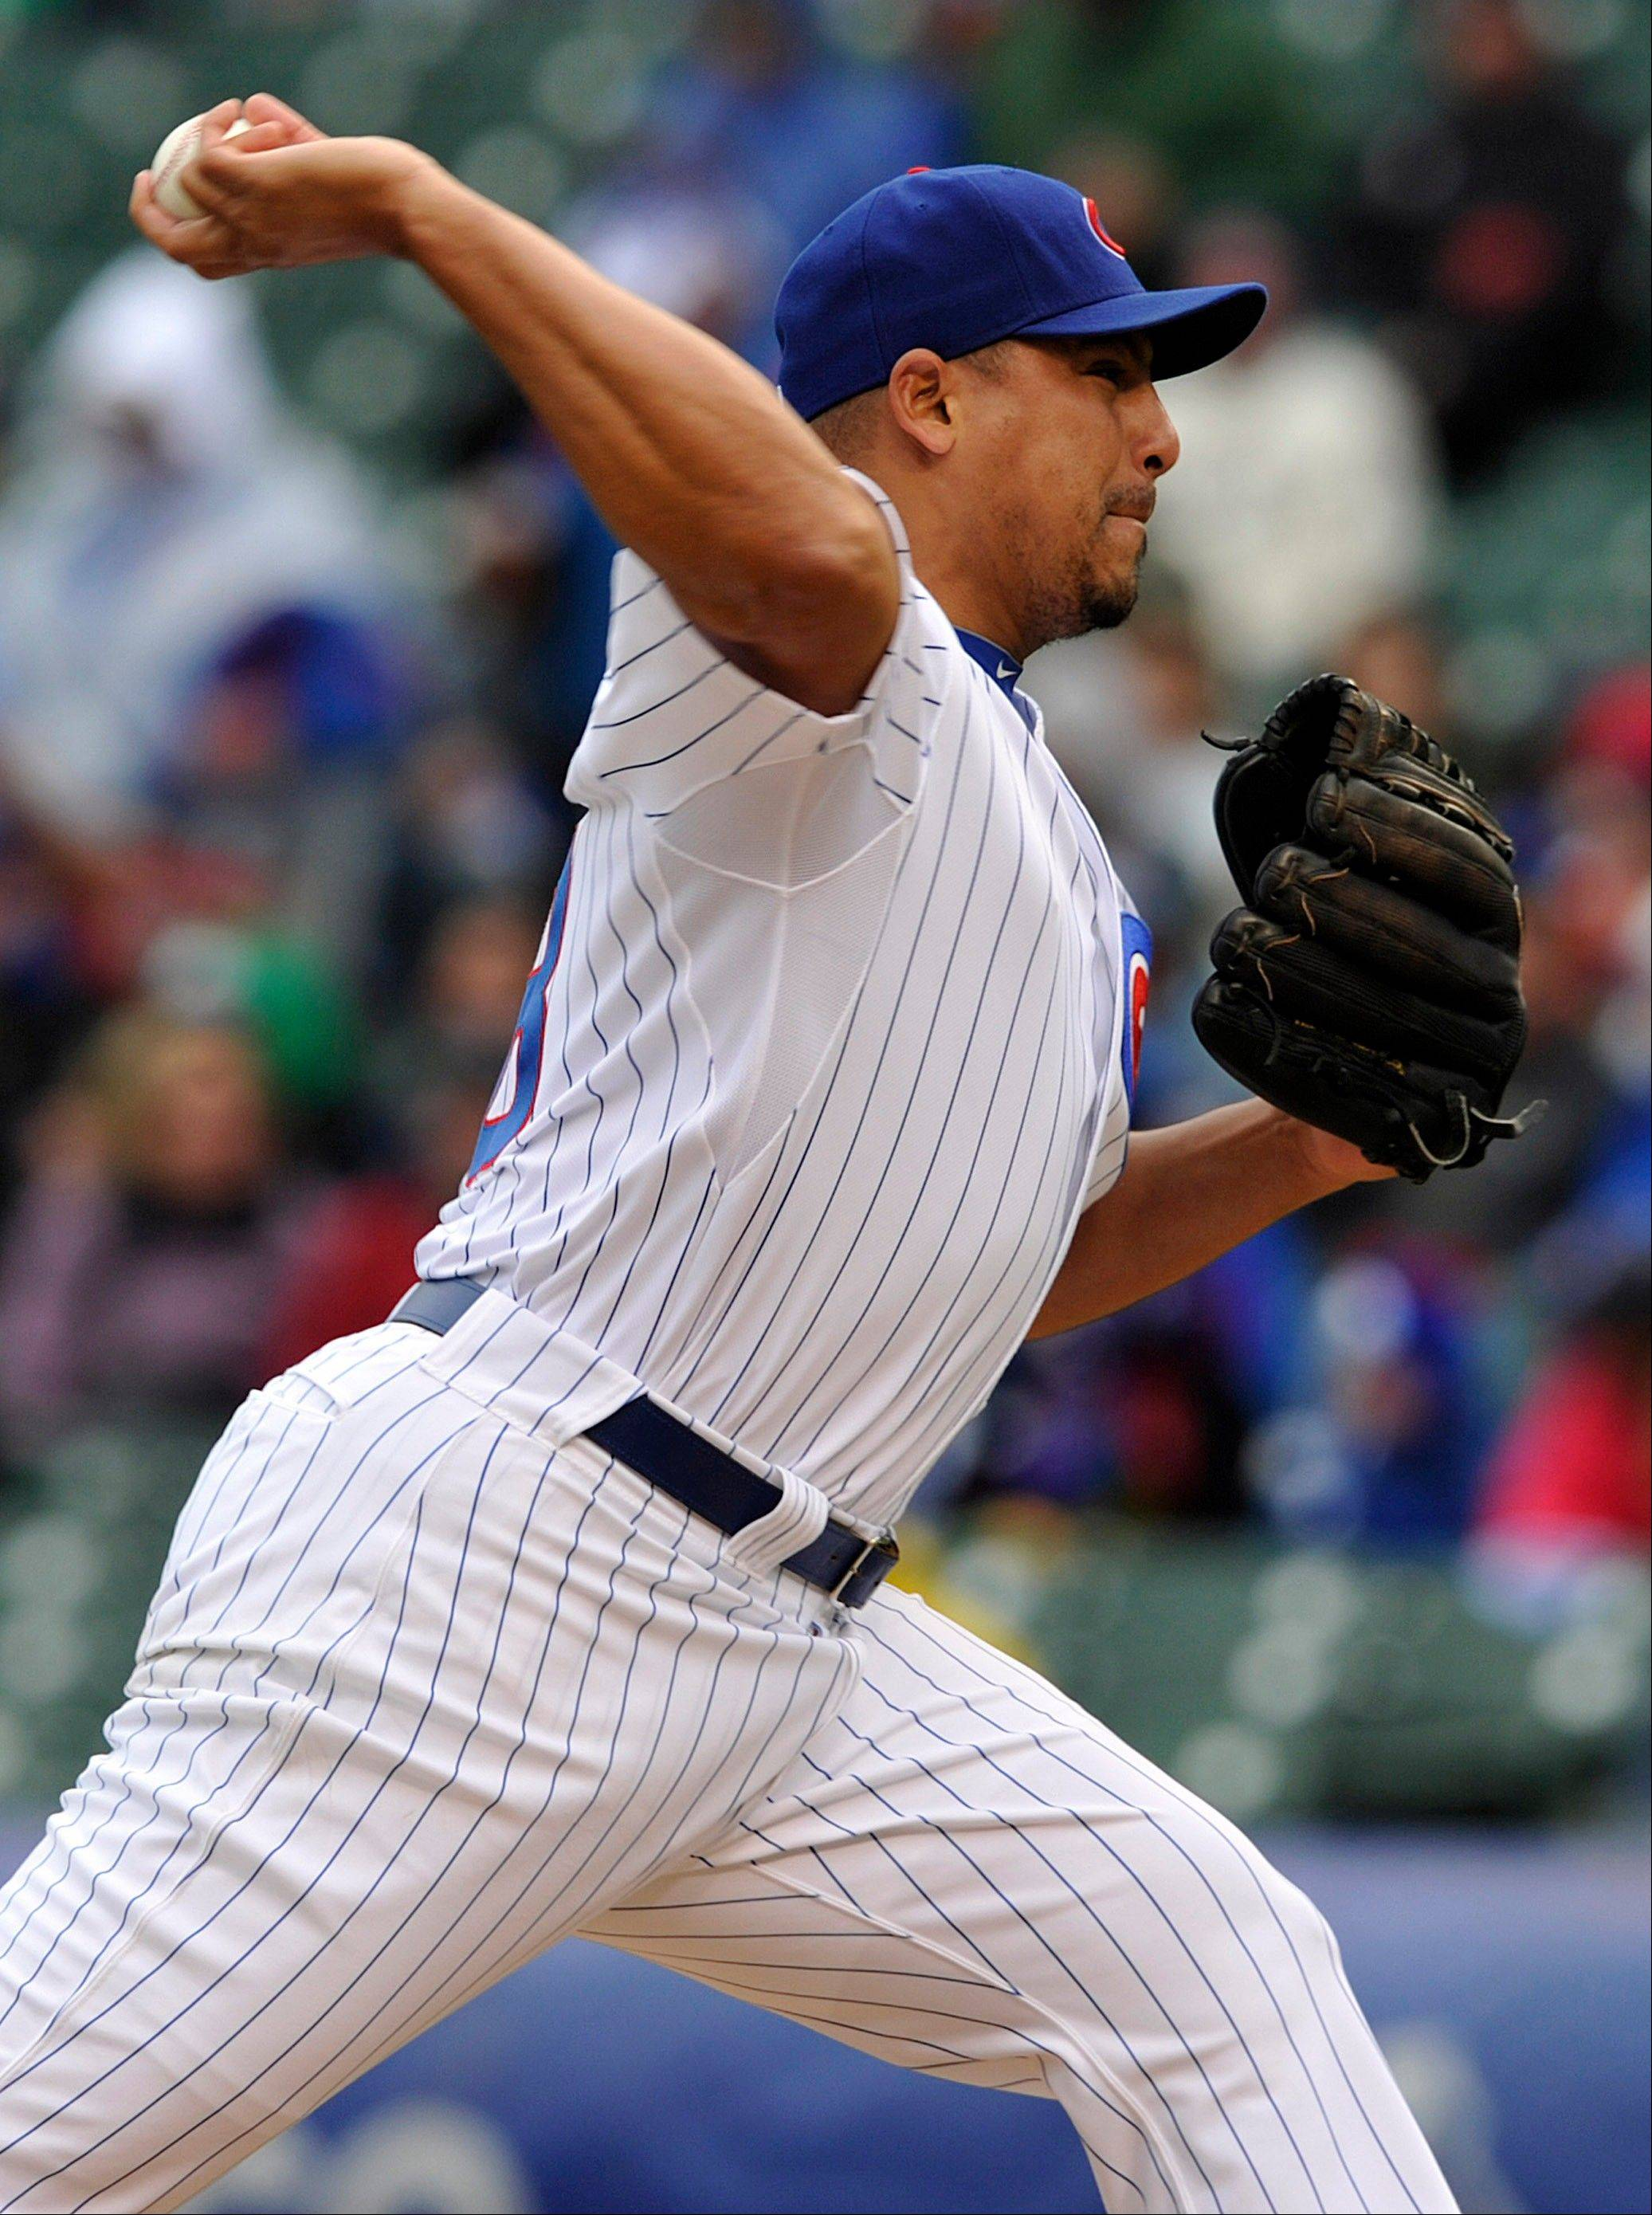 Cubs starter Carlos Zambrano works against the Mets on Thursday.